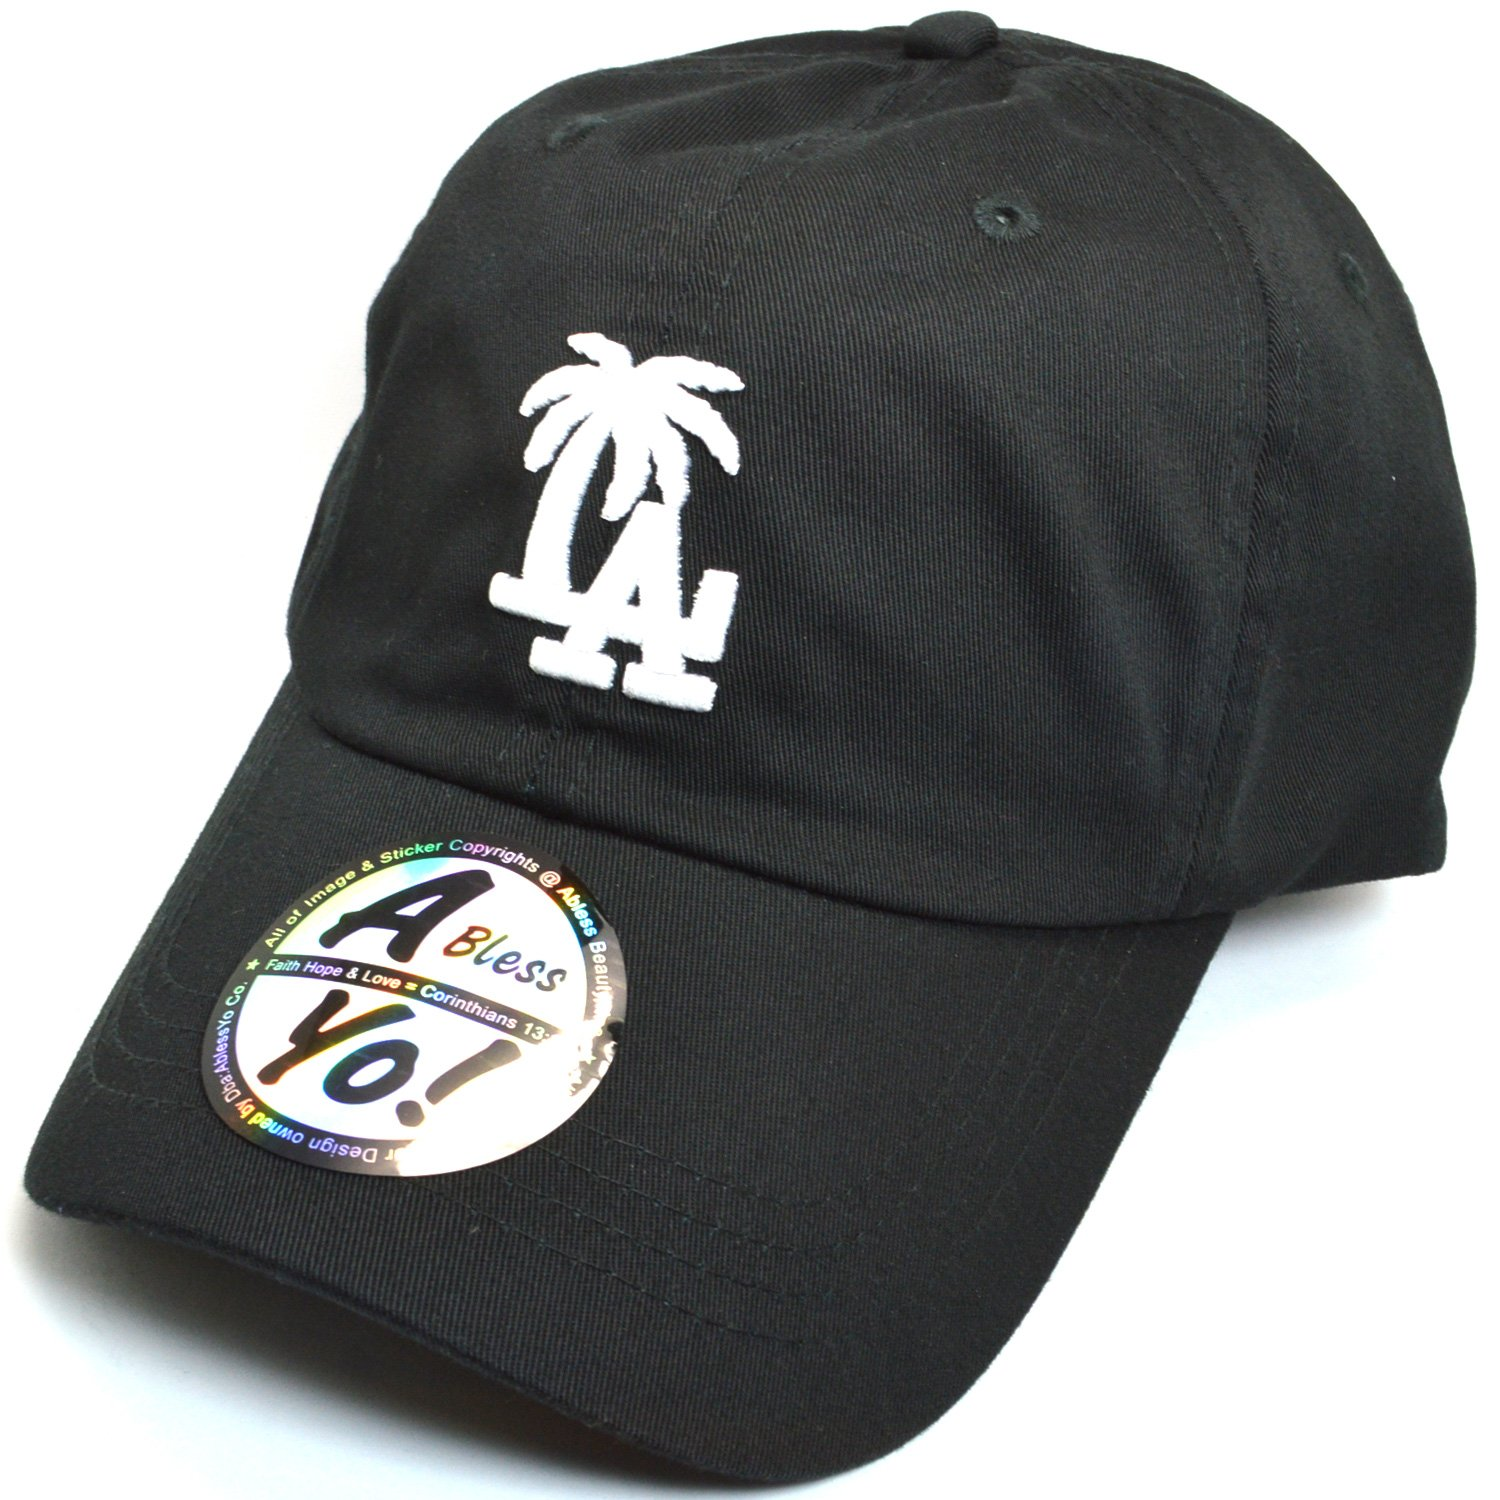 AblessYo LA Palm Tree Embroidered Baseball Golf Polo Style Unisex Cotton Cap AYO2015 (Black)